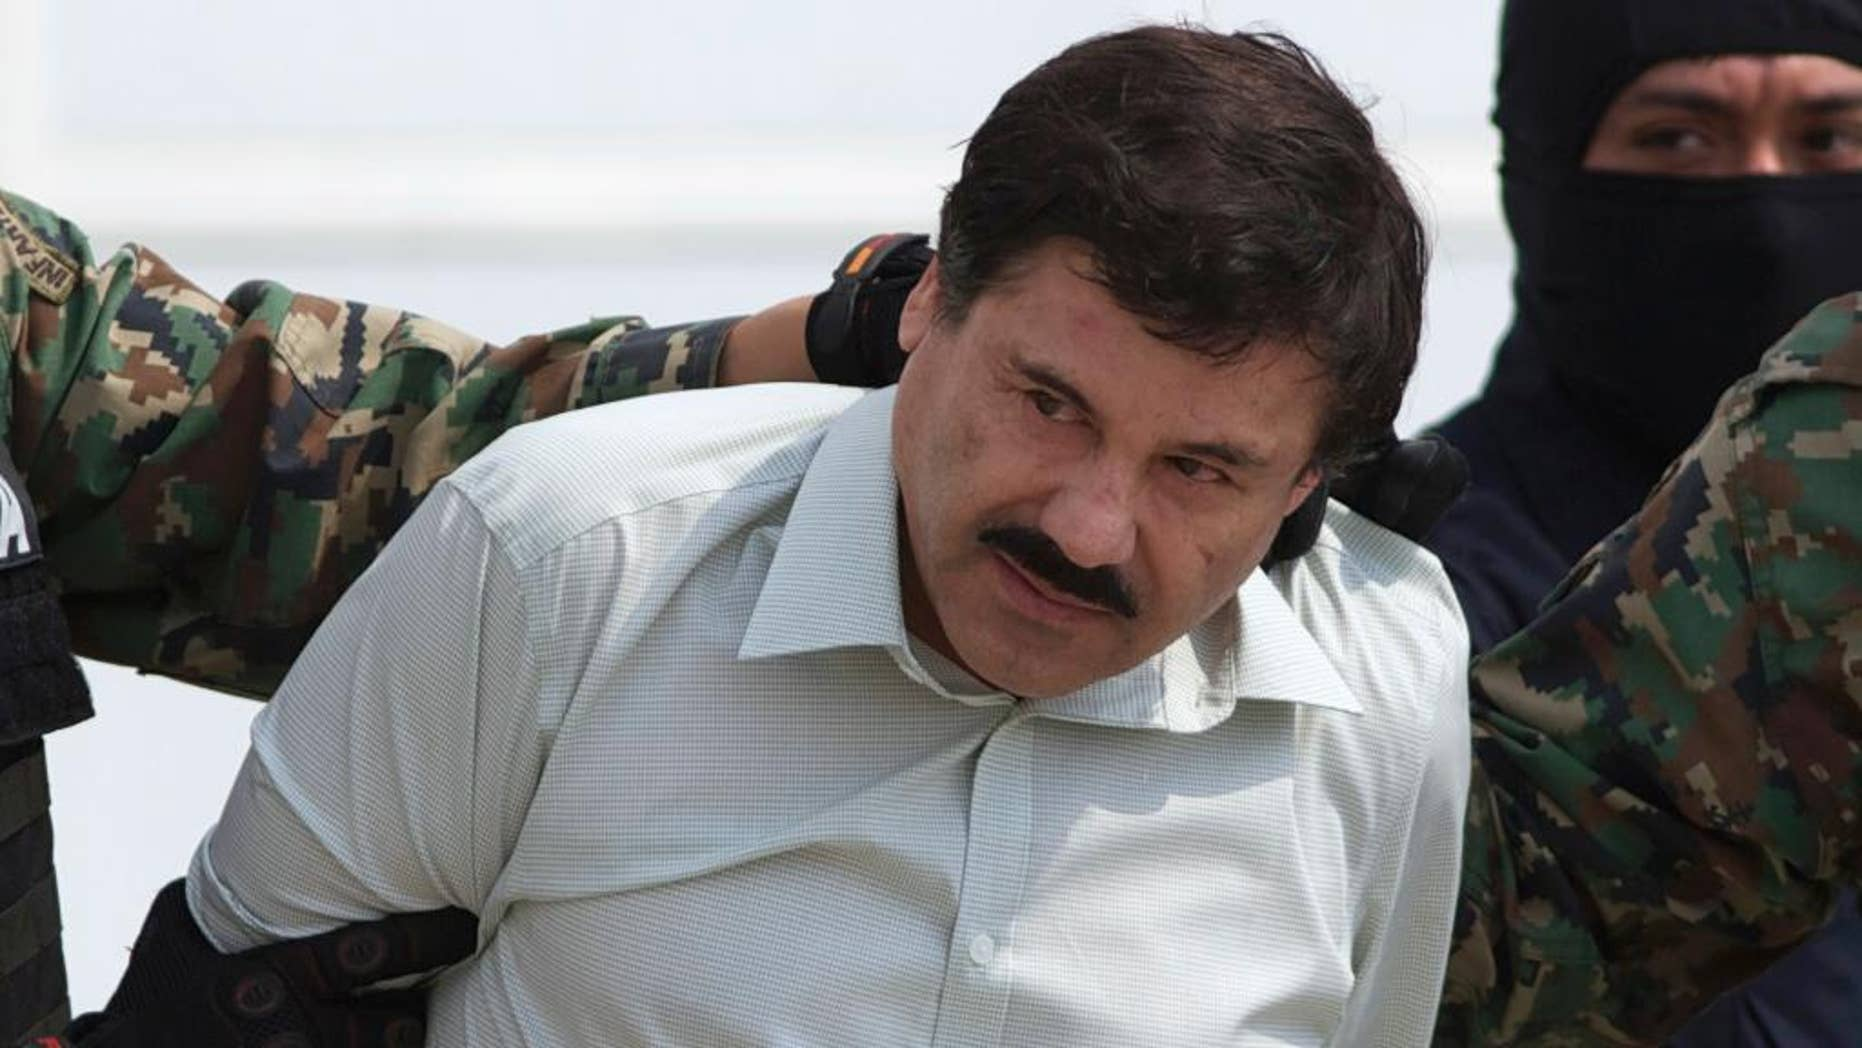 "FILE - This Feb. 22, 2014 file photo shows Joaquin ""El Chapo"" Guzman, the head of Mexico's Sinaloa Cartel, being escorted to a helicopter in Mexico City following his capture overnight in the beach resort town of Mazatlan. On Monday, Nov. 24, 2014, at federal court in Chicago, a U.S. judge sentenced Alfredo Vasquez-Hernandez, a reputed lieutenant of Guzman, to 22 years in prison for his role in a $1 billion trafficking conspiracy, saying the stiff sentence should send a message to traffickers everywhere. The case is regarded as one of the U.S. government's most important against Mexican cartels. Guzman remains jailed in Mexico and Mexican authorities haven't said if they might extradite him to Chicago. (AP Photo/Eduardo Verdugo, File)"